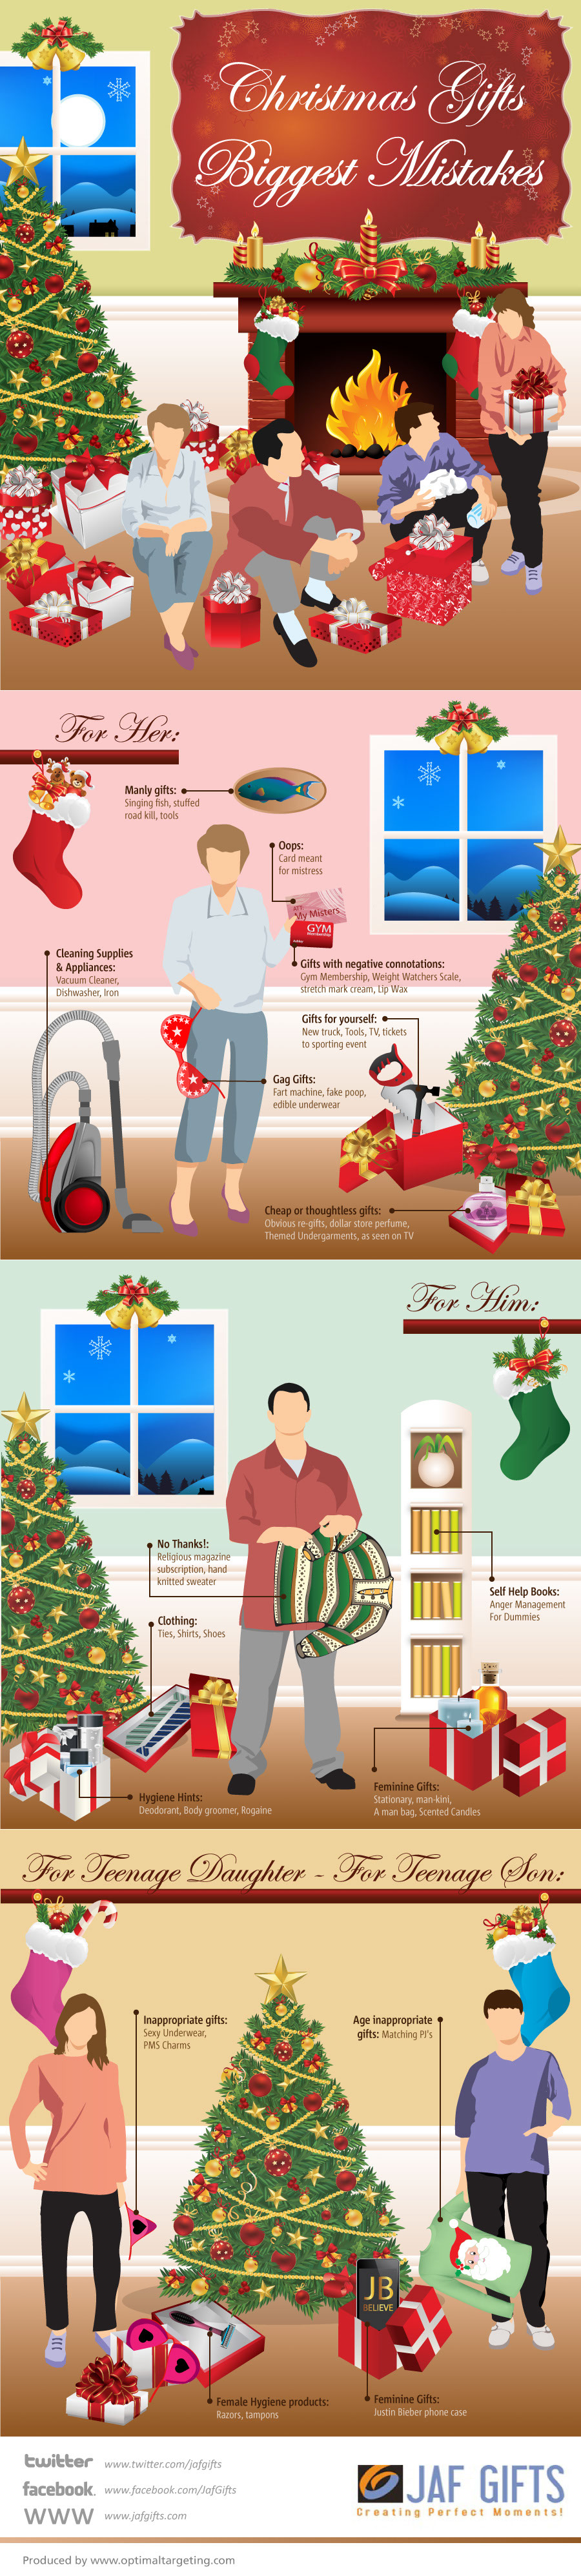 Wrong Christmas Gifts-Infographic